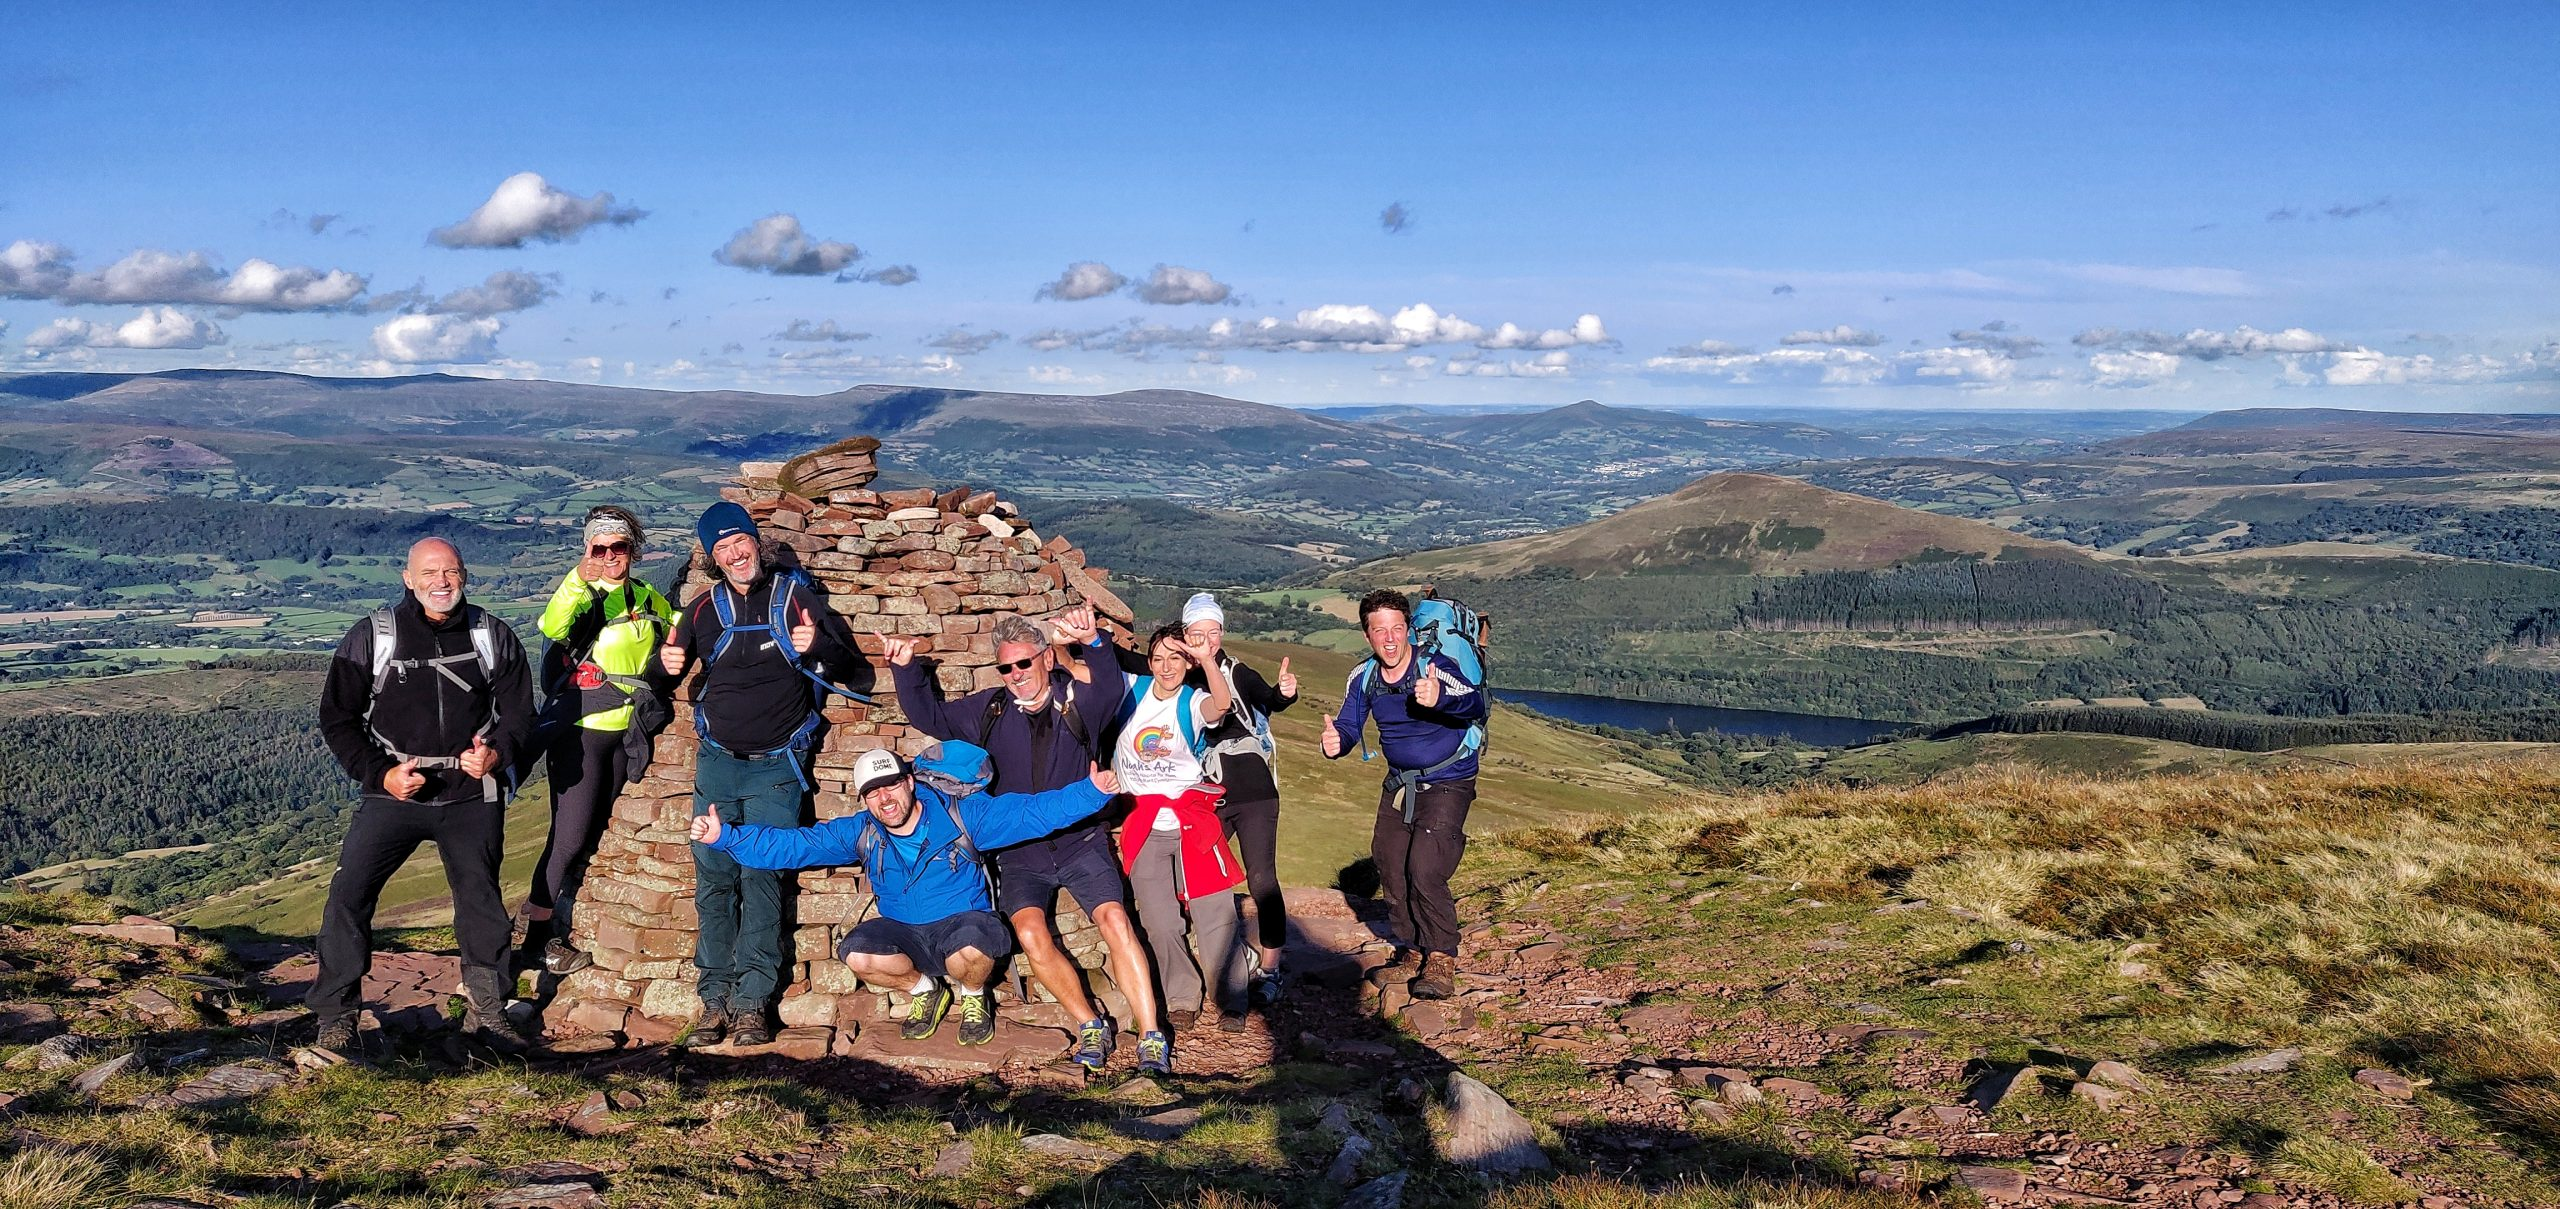 Brecon Beacons 10 Peak Challenge group